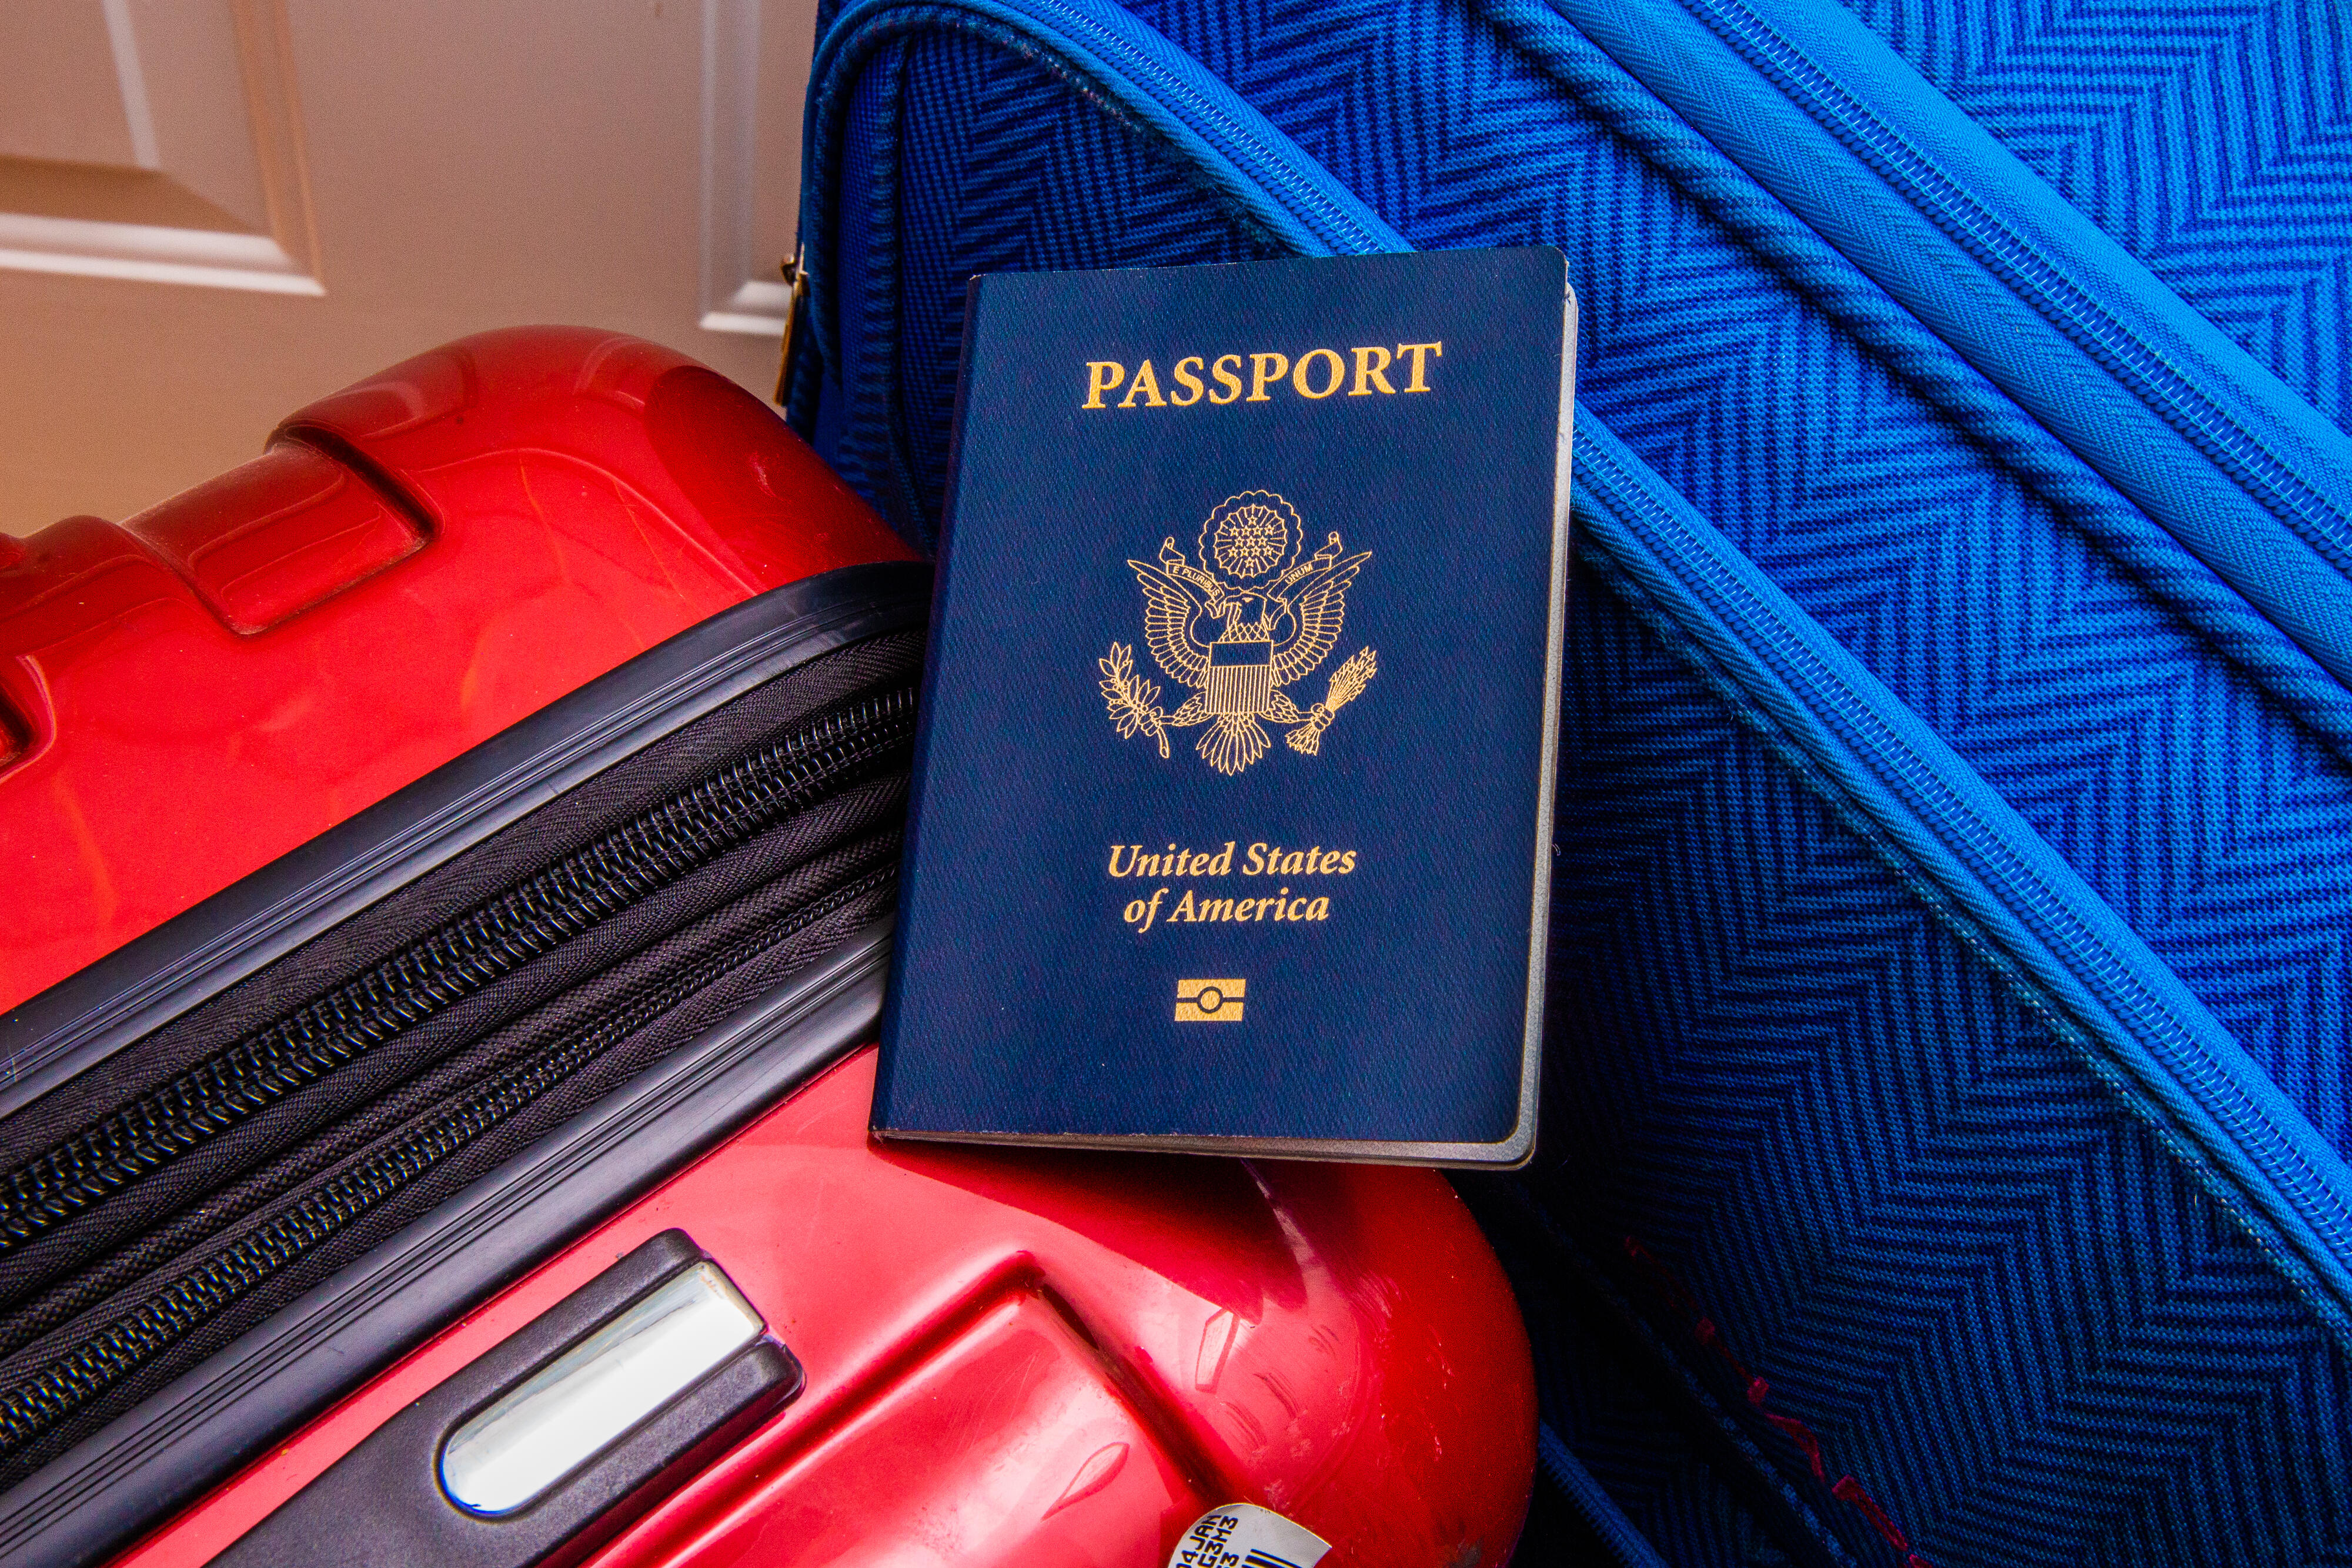 020-2021-vaccine-passport-travel-suitcase-flying-airline-requirements-app